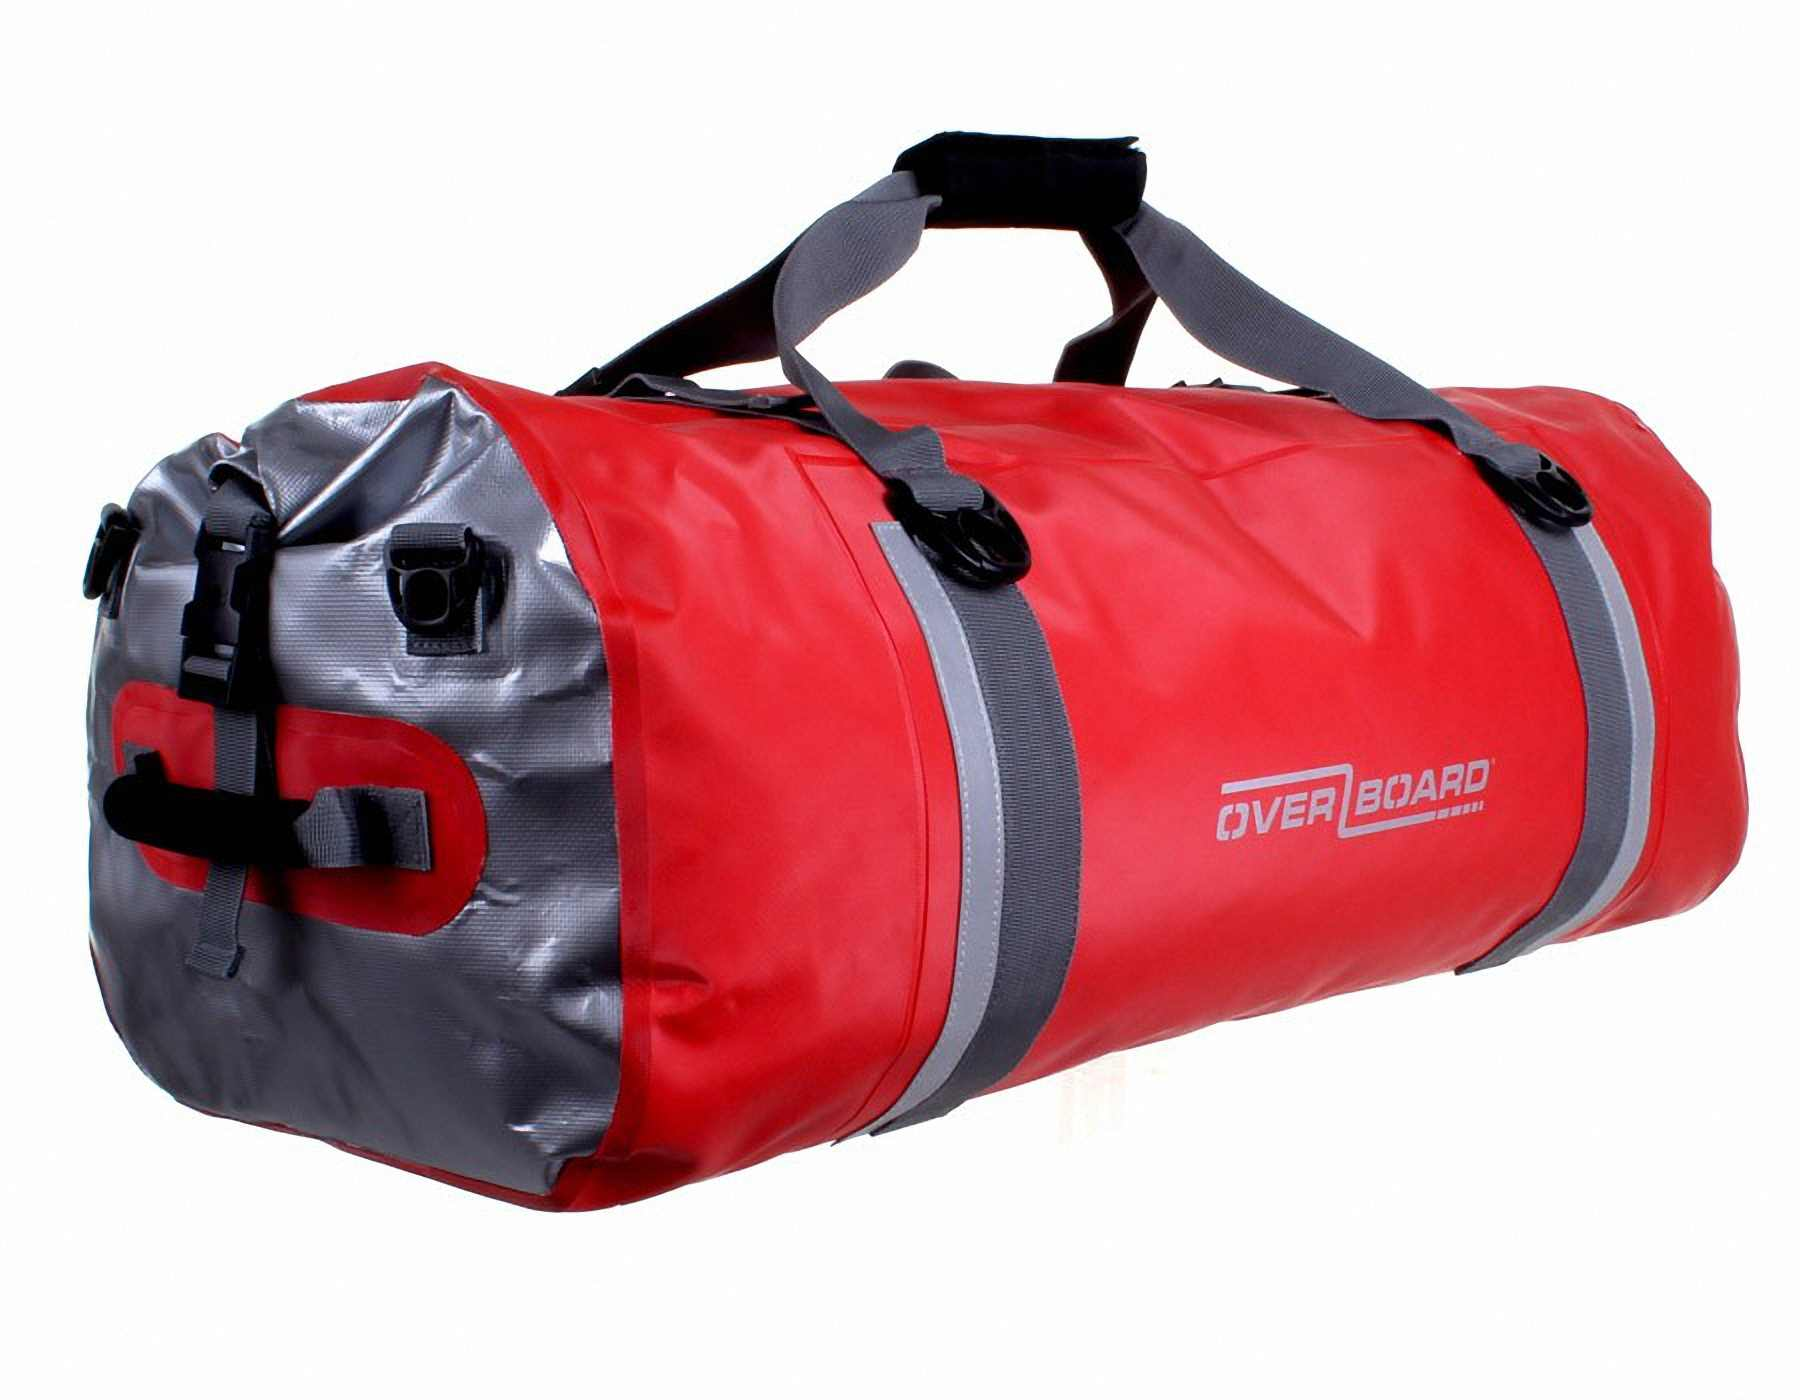 Водонепроницаемая сумка OverBoard OB1154R - Pro-Sports Waterproof Duffel Bag - 60 литров.  Фото 6